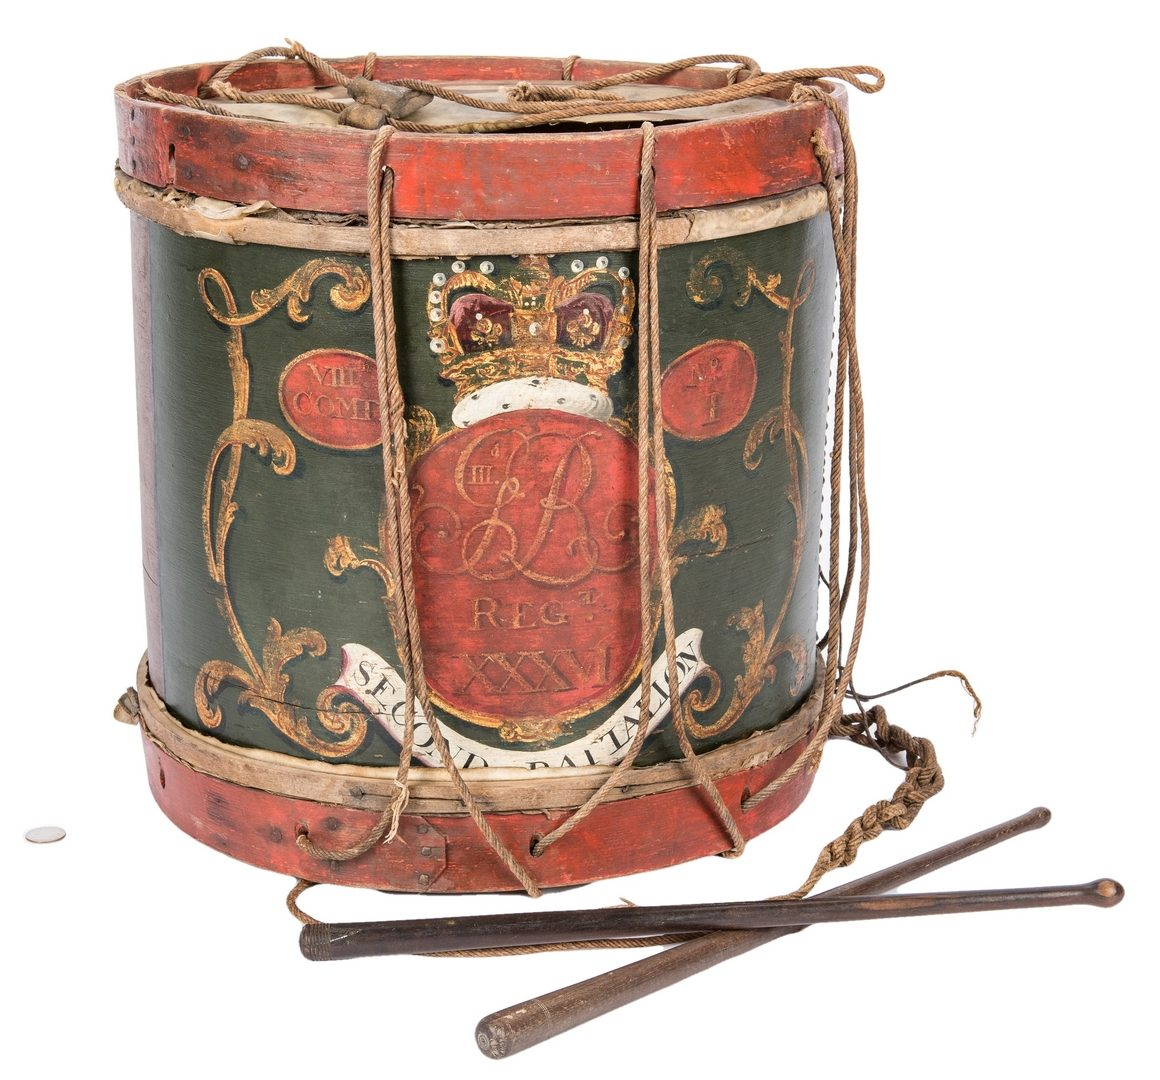 Lot 379: George III Regimental Drum and sticks